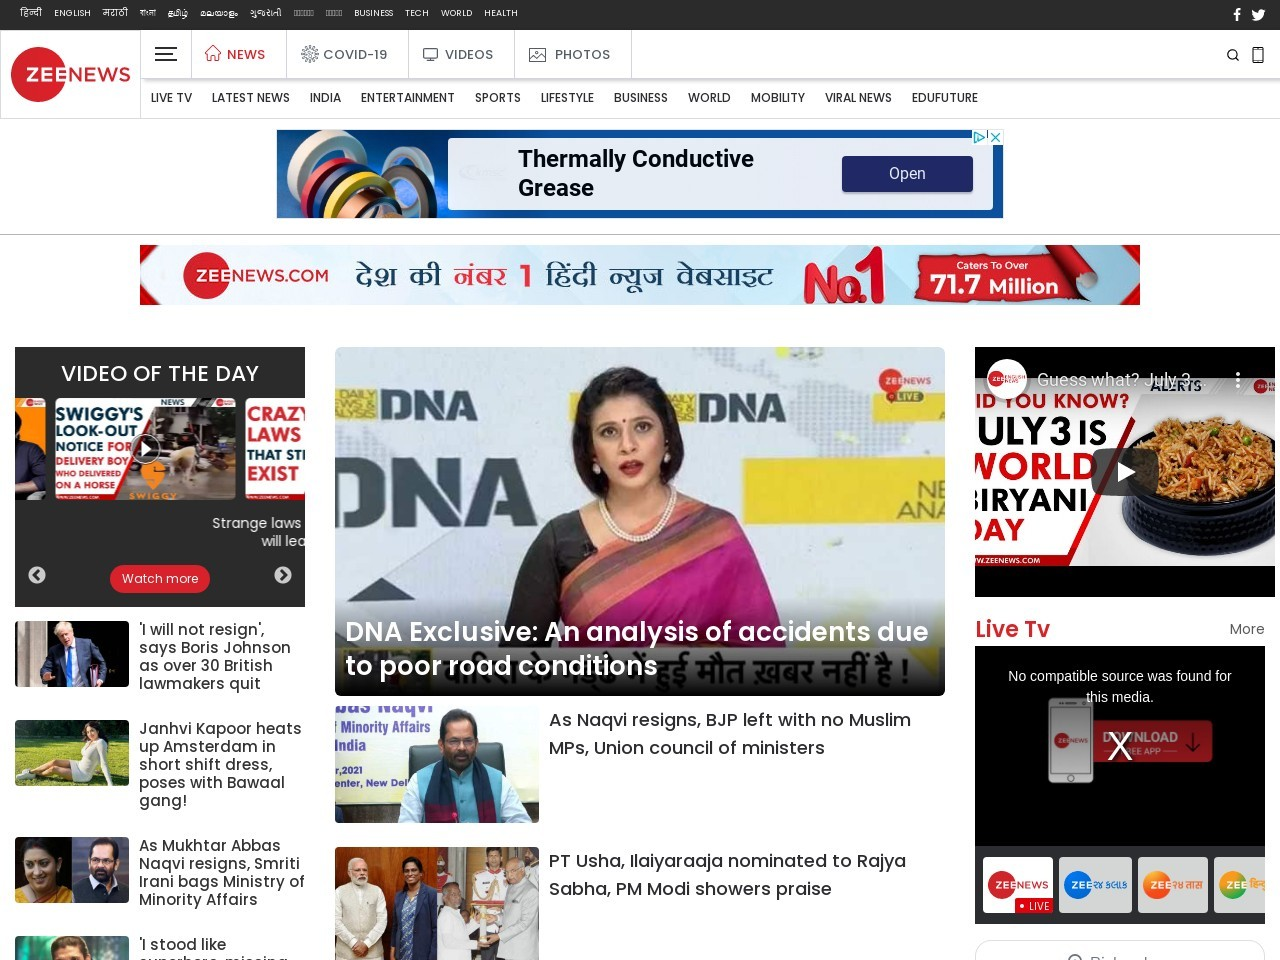 WATCH: Yuvraj Singh turns reporter to interview Yuzvendra Chahal after his record six-wicket haul